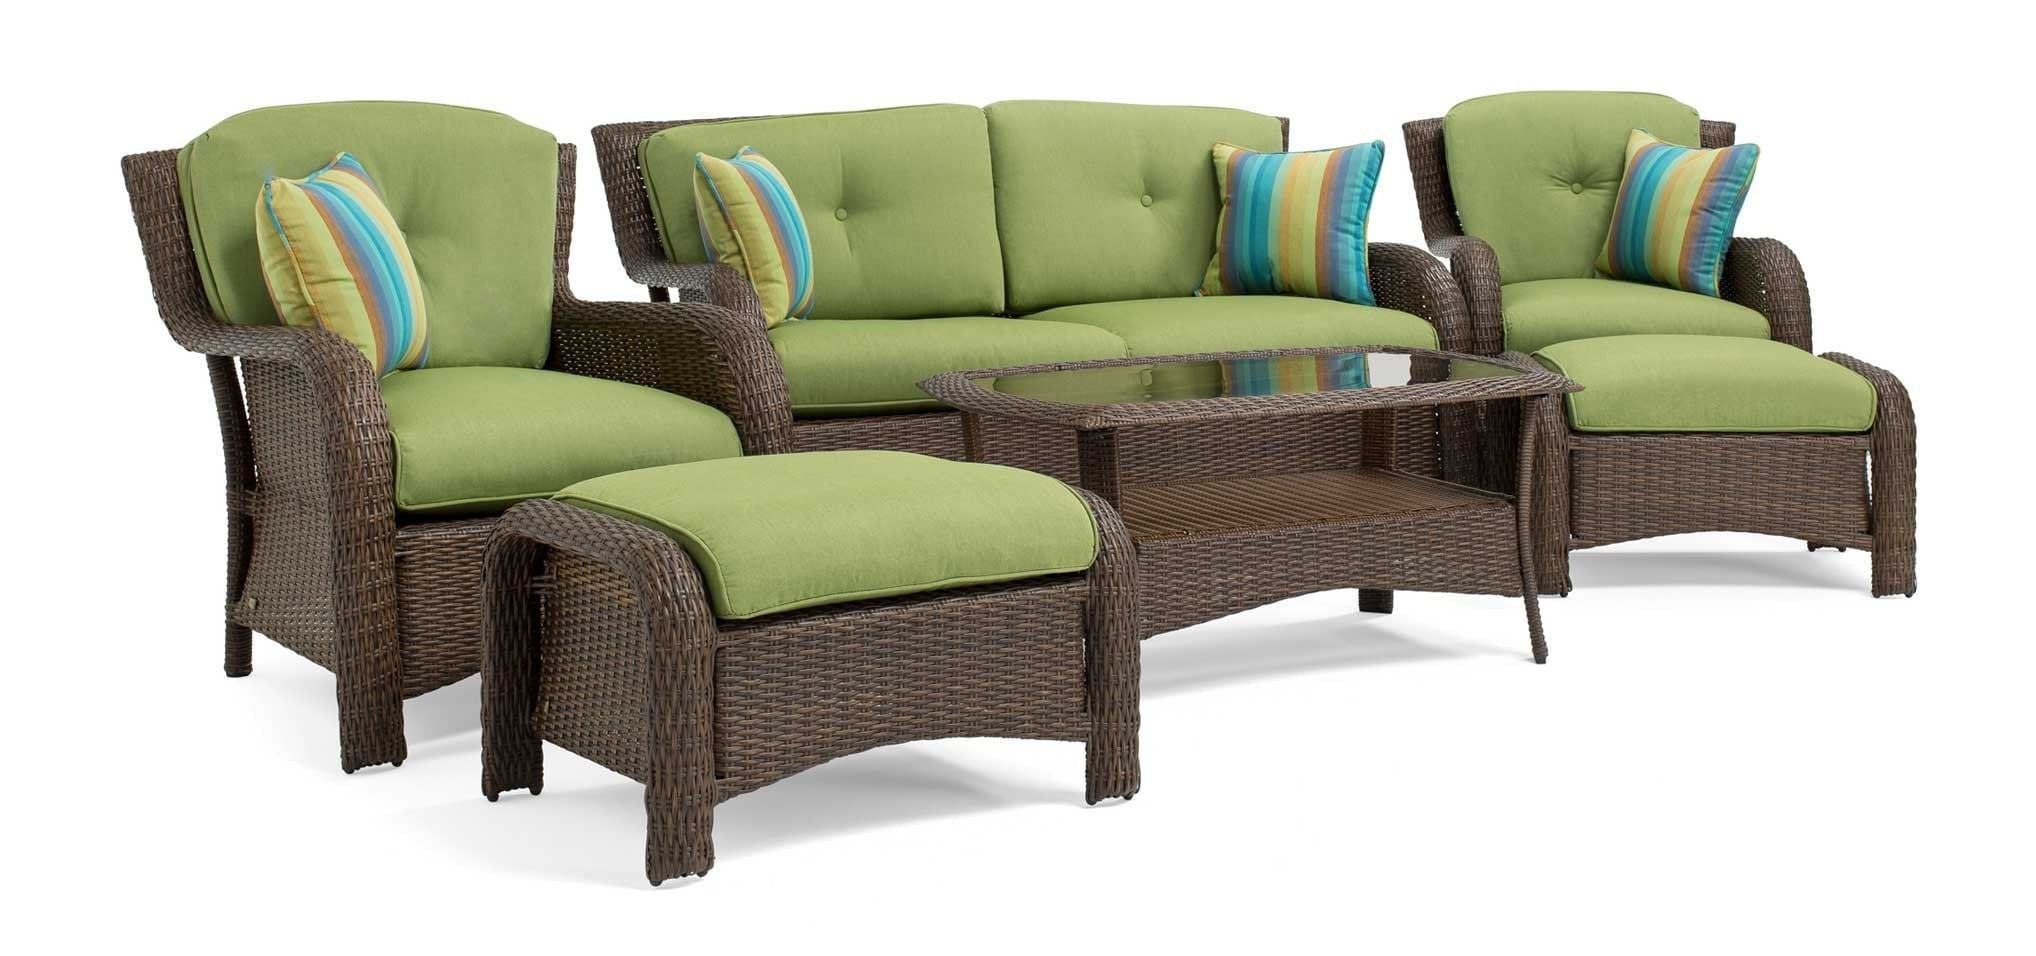 Sawyer 6pc Resin Wicker Patio Furniture Conversation Set Green